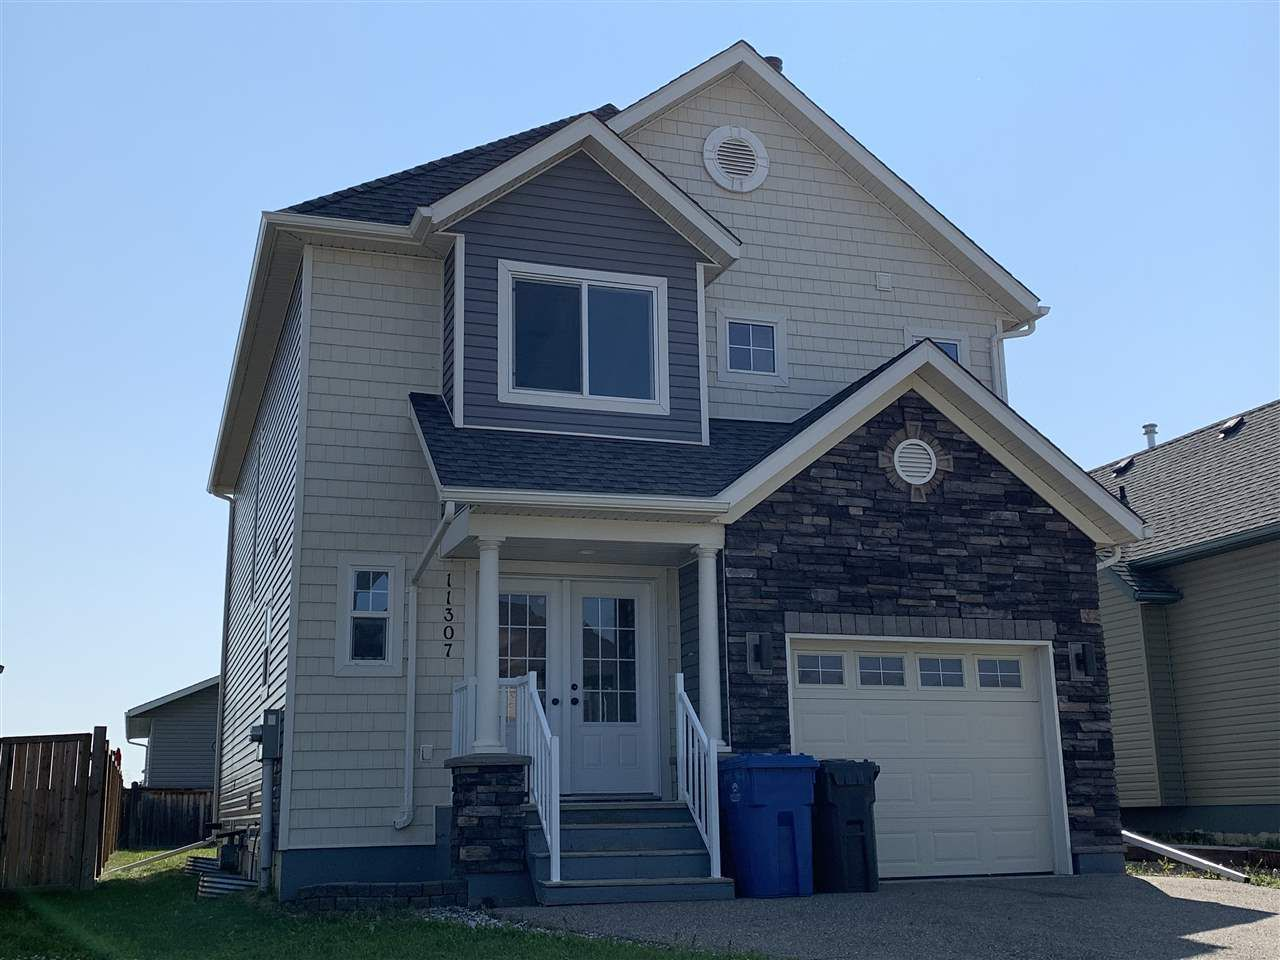 Main Photo: 11307 88A Street in Fort St. John: Fort St. John - City NE House for sale (Fort St. John (Zone 60))  : MLS®# R2388727